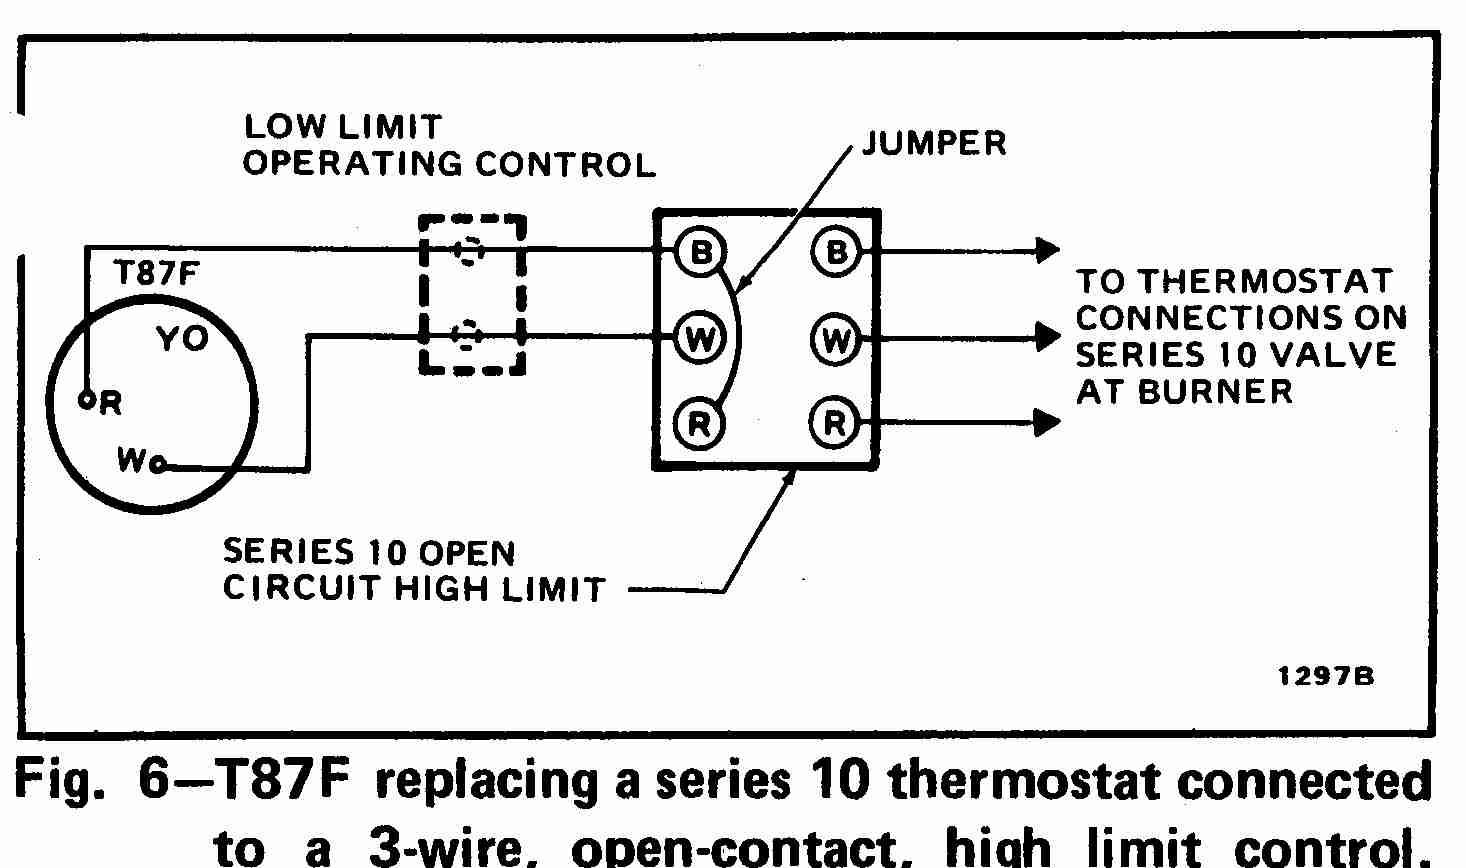 TT_T87F_0002_3WHL_DJF room thermostat wiring diagrams for hvac systems fcu wiring diagram at nearapp.co